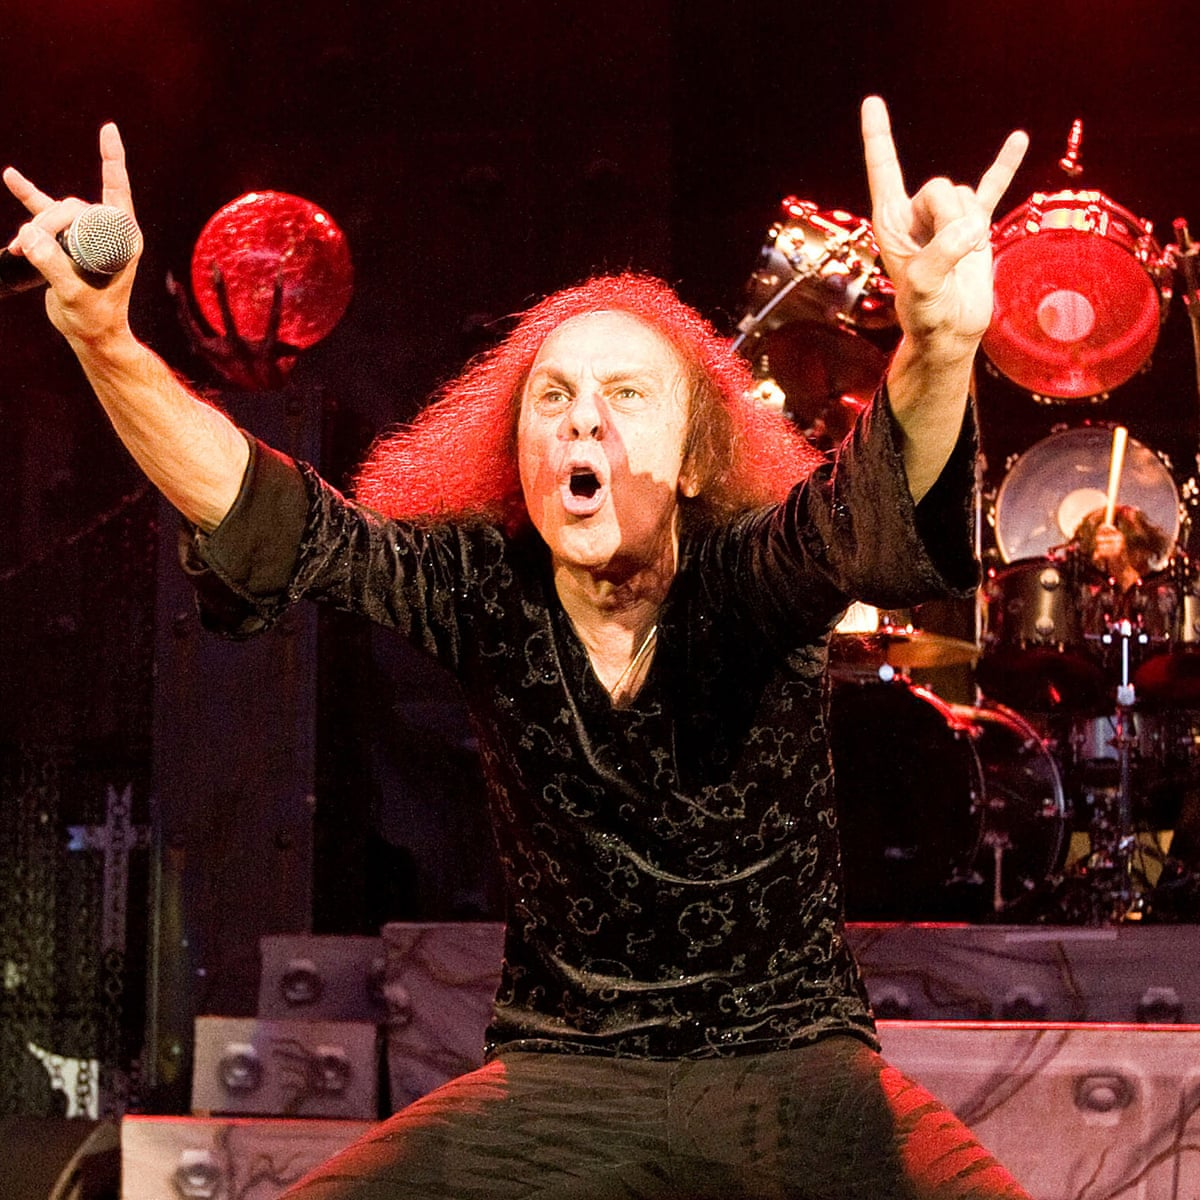 Rock star Ronnie James Dio set for world tour – despite having died in 2010 | Ronnie James Dio | The Guardian